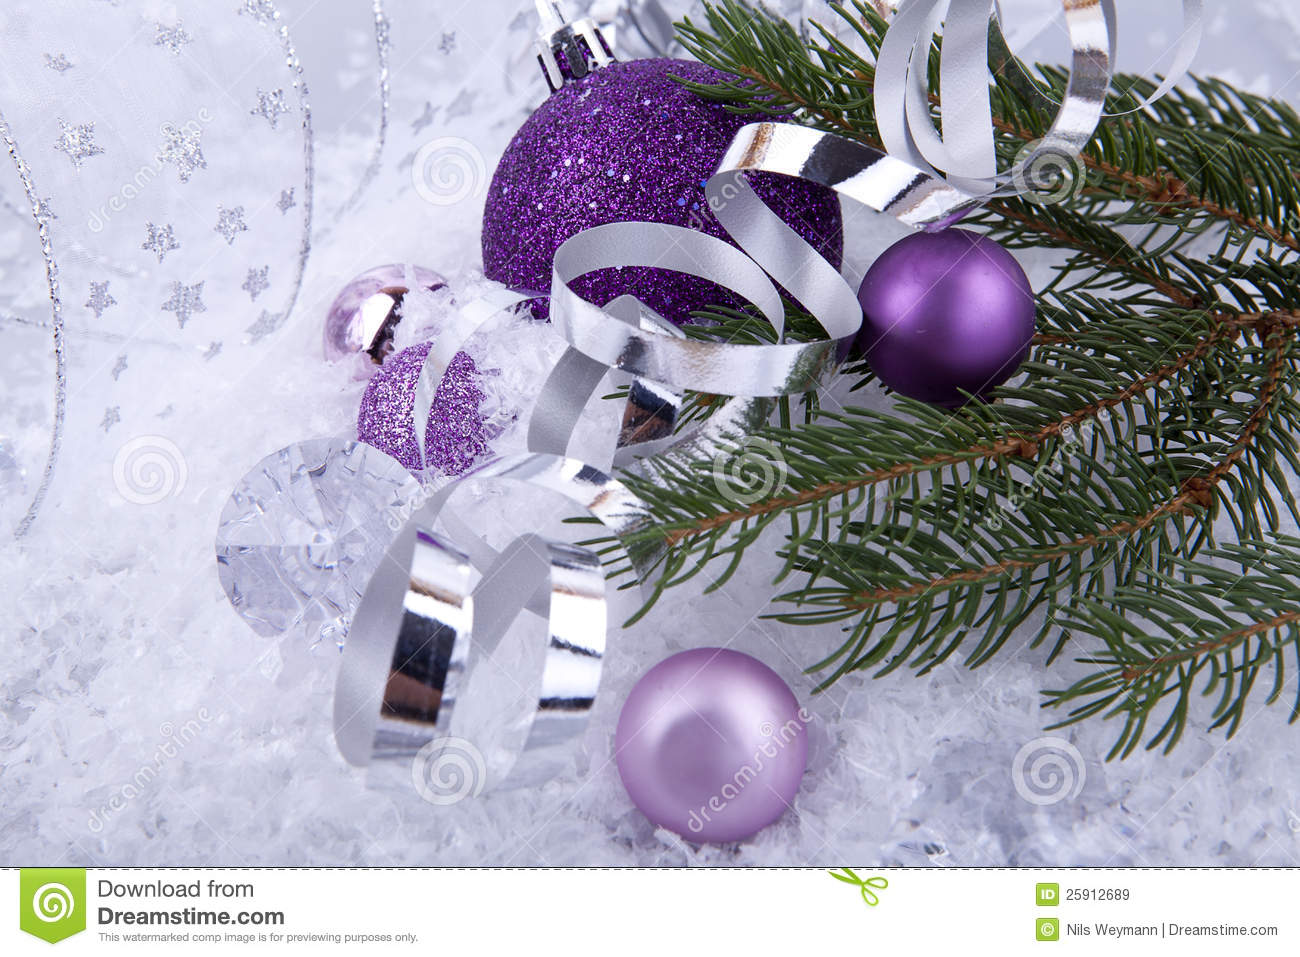 Lavender christmas ornaments - Christmas Decoration Purple Silver On White Snow